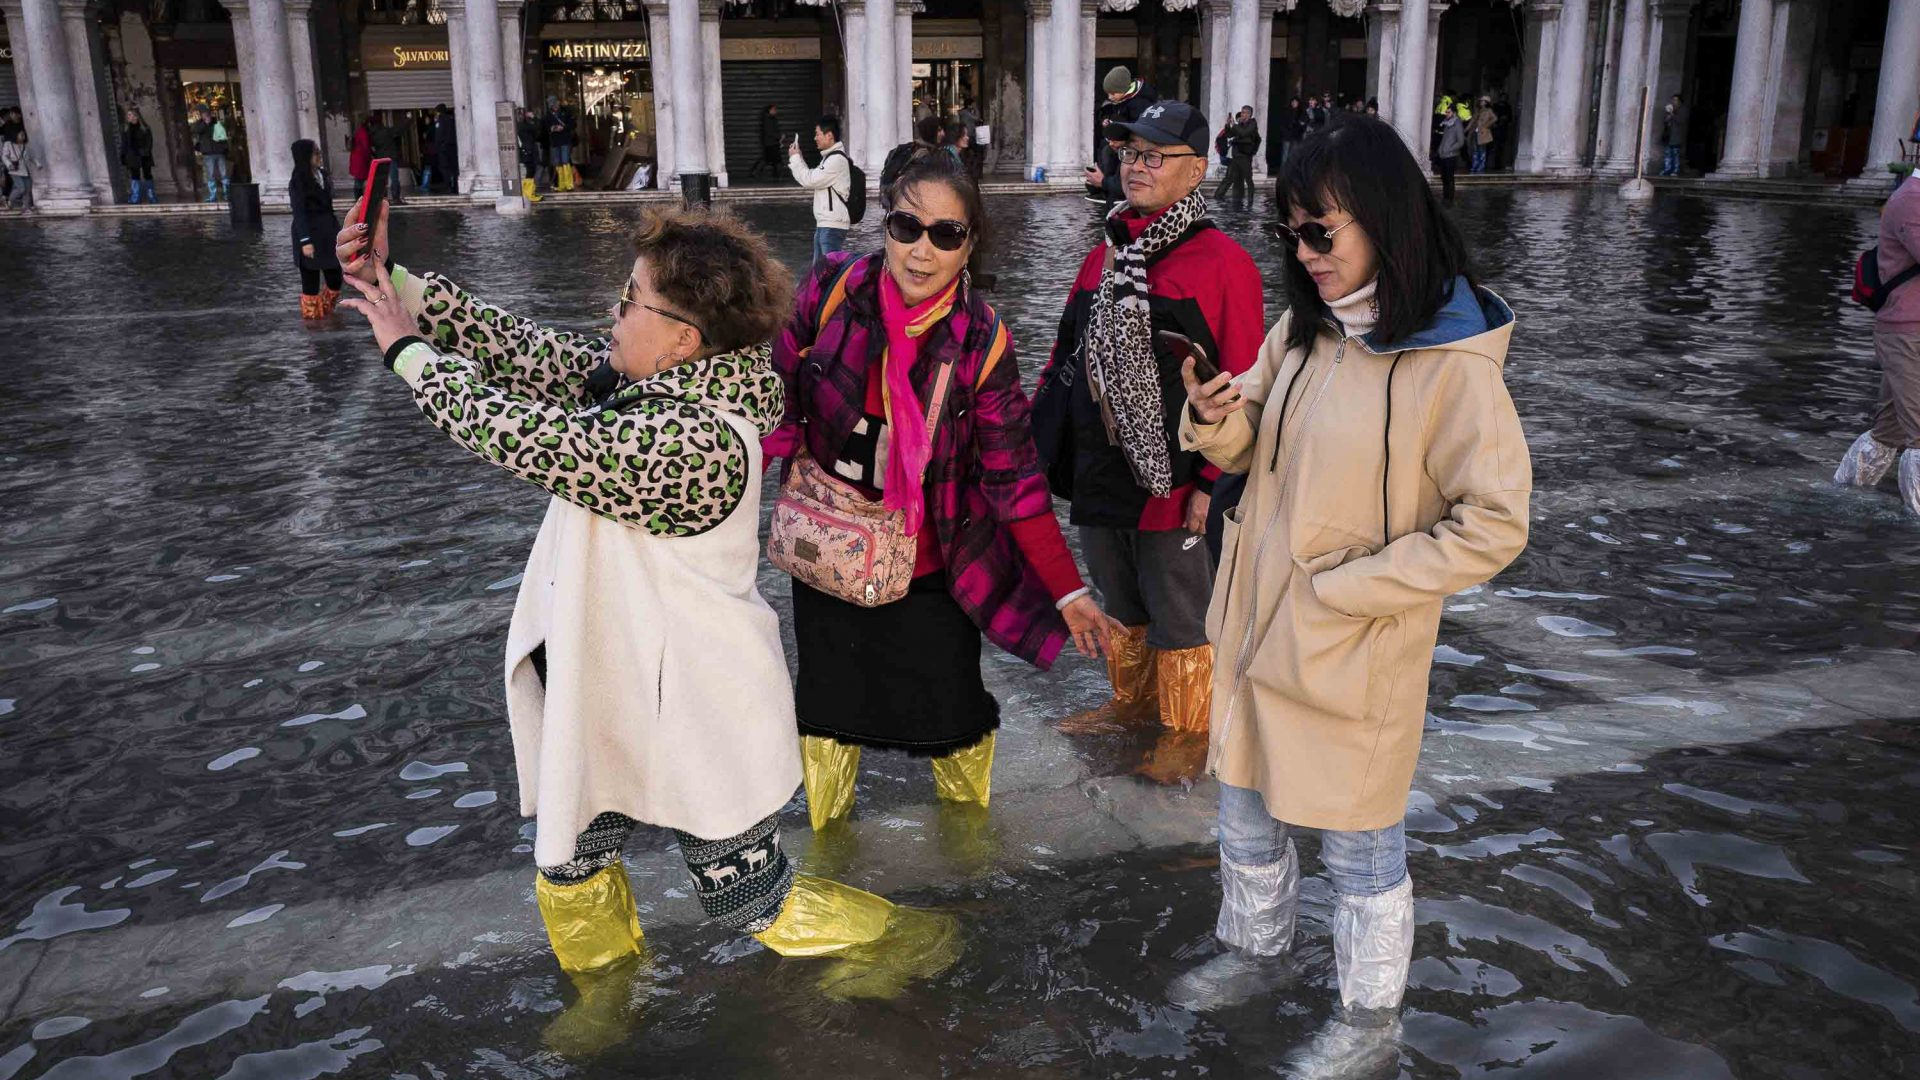 Chinese tourists taking a selfie at a flooded Piazza San Marco.